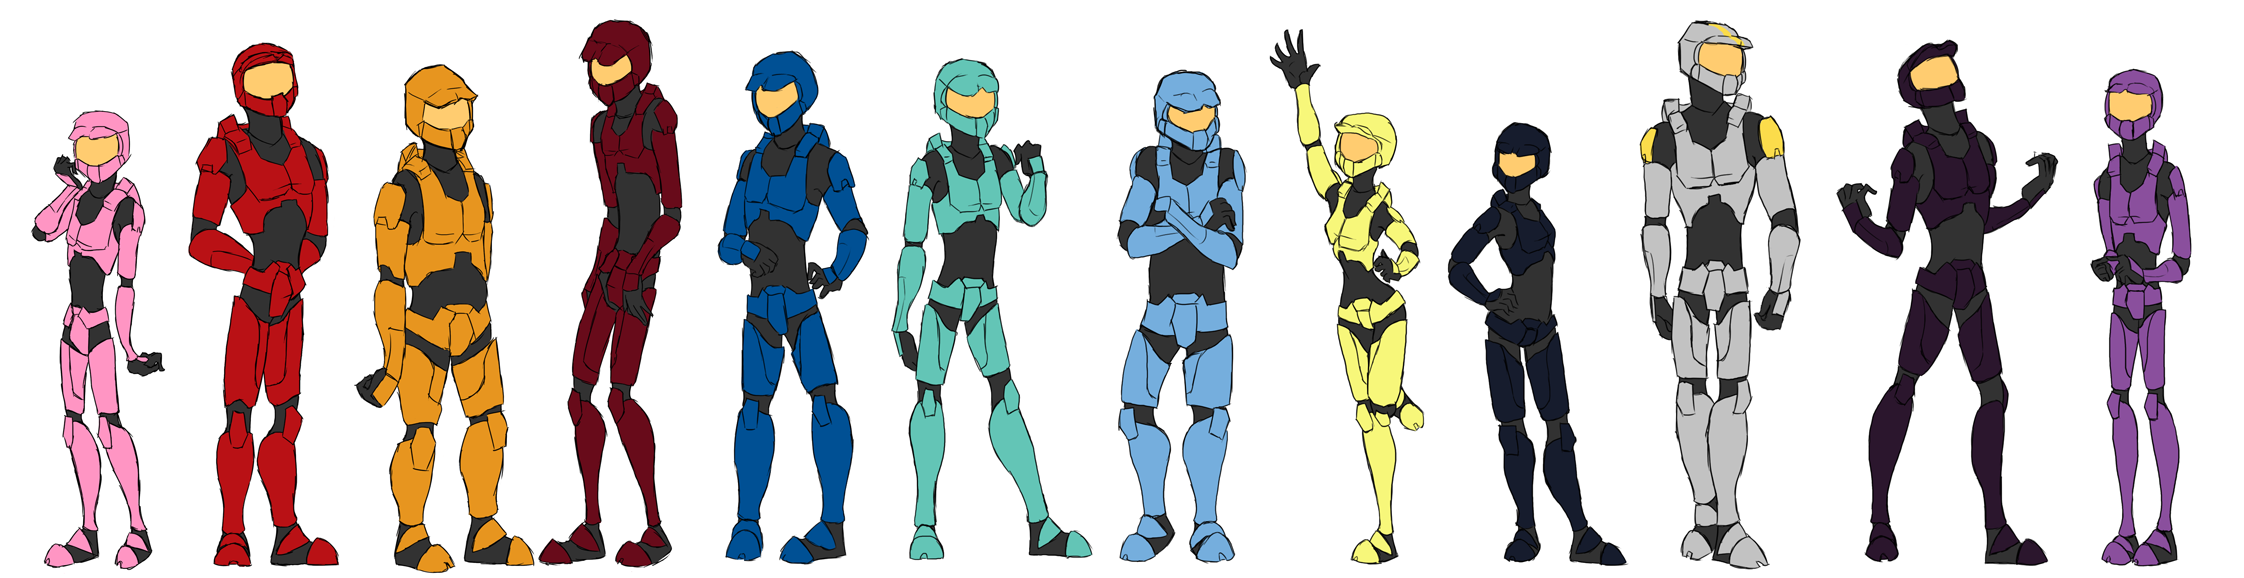 Red_vs_Blue_Cast_by_Zombaits.png